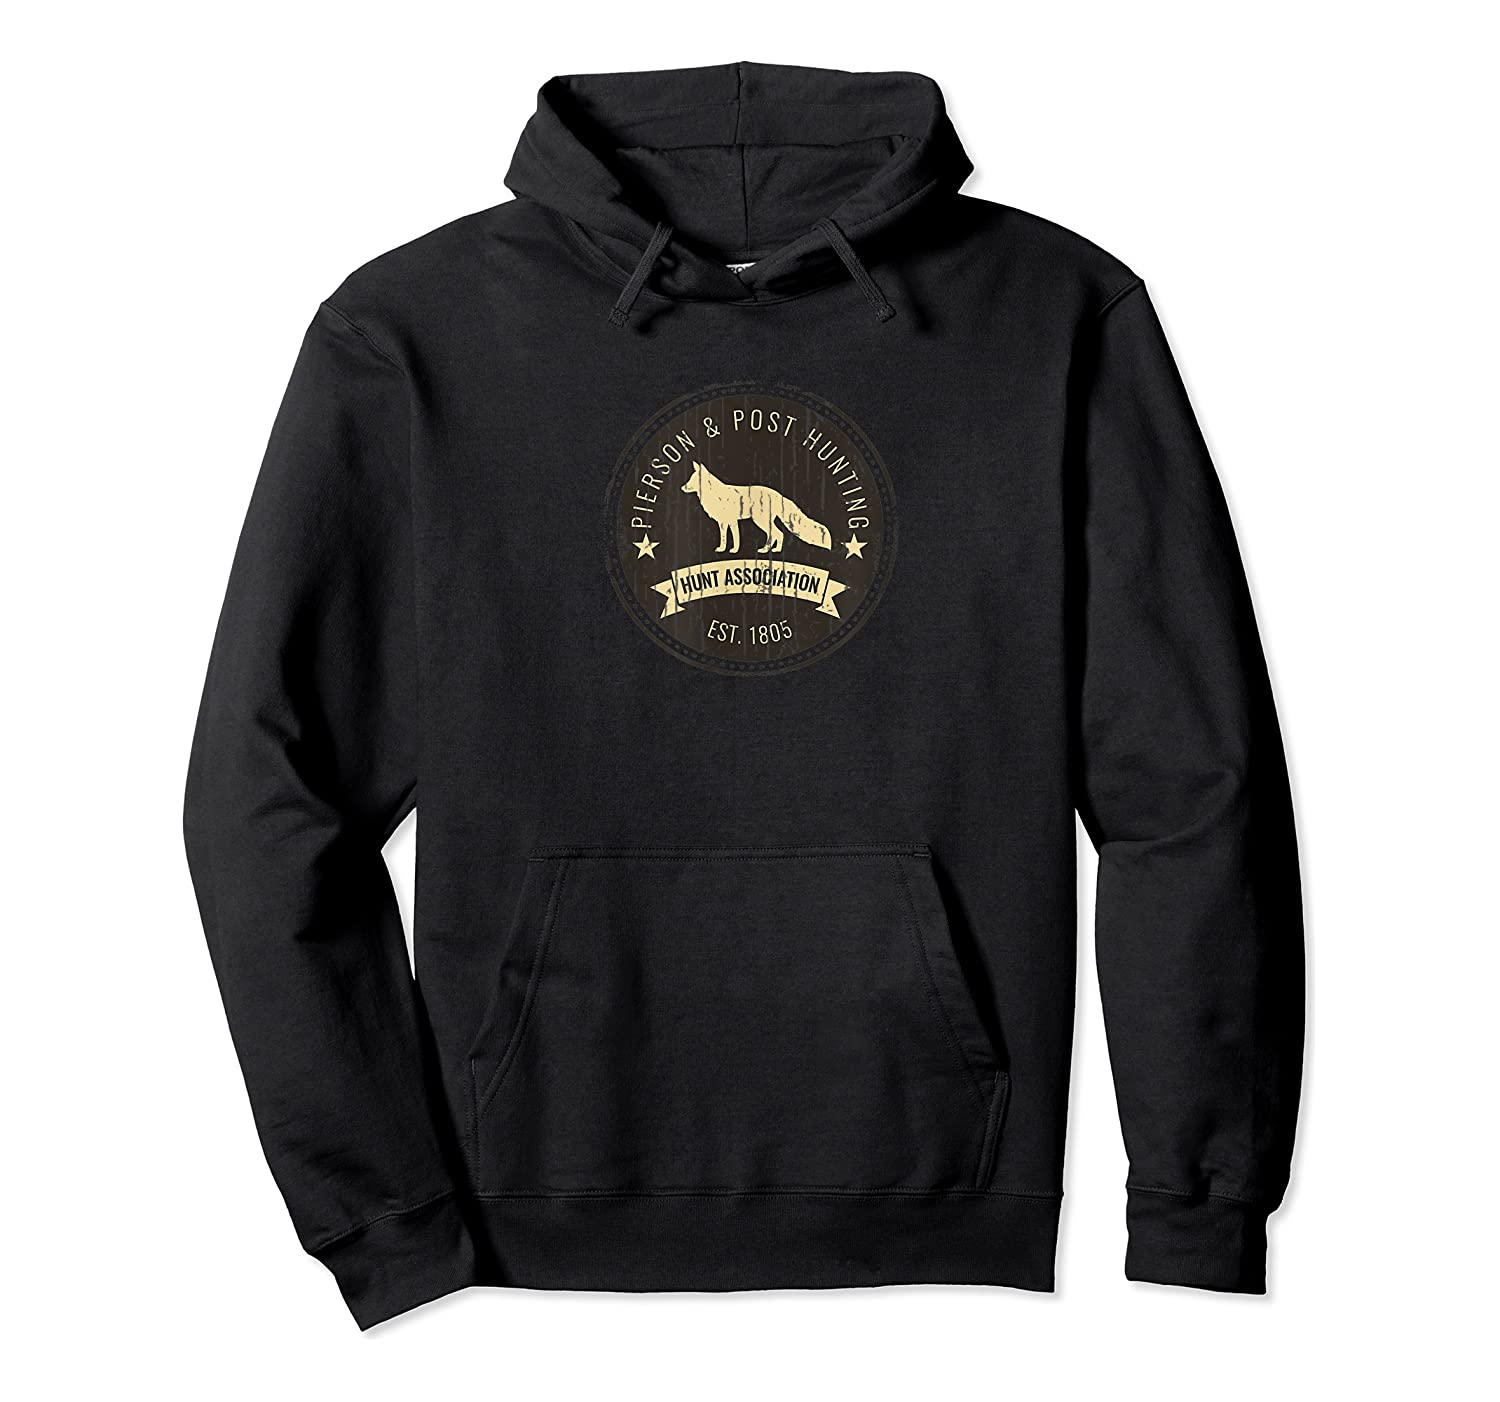 Pierson V. Post Property Law T-shirt Unisex Pullover Hoodie